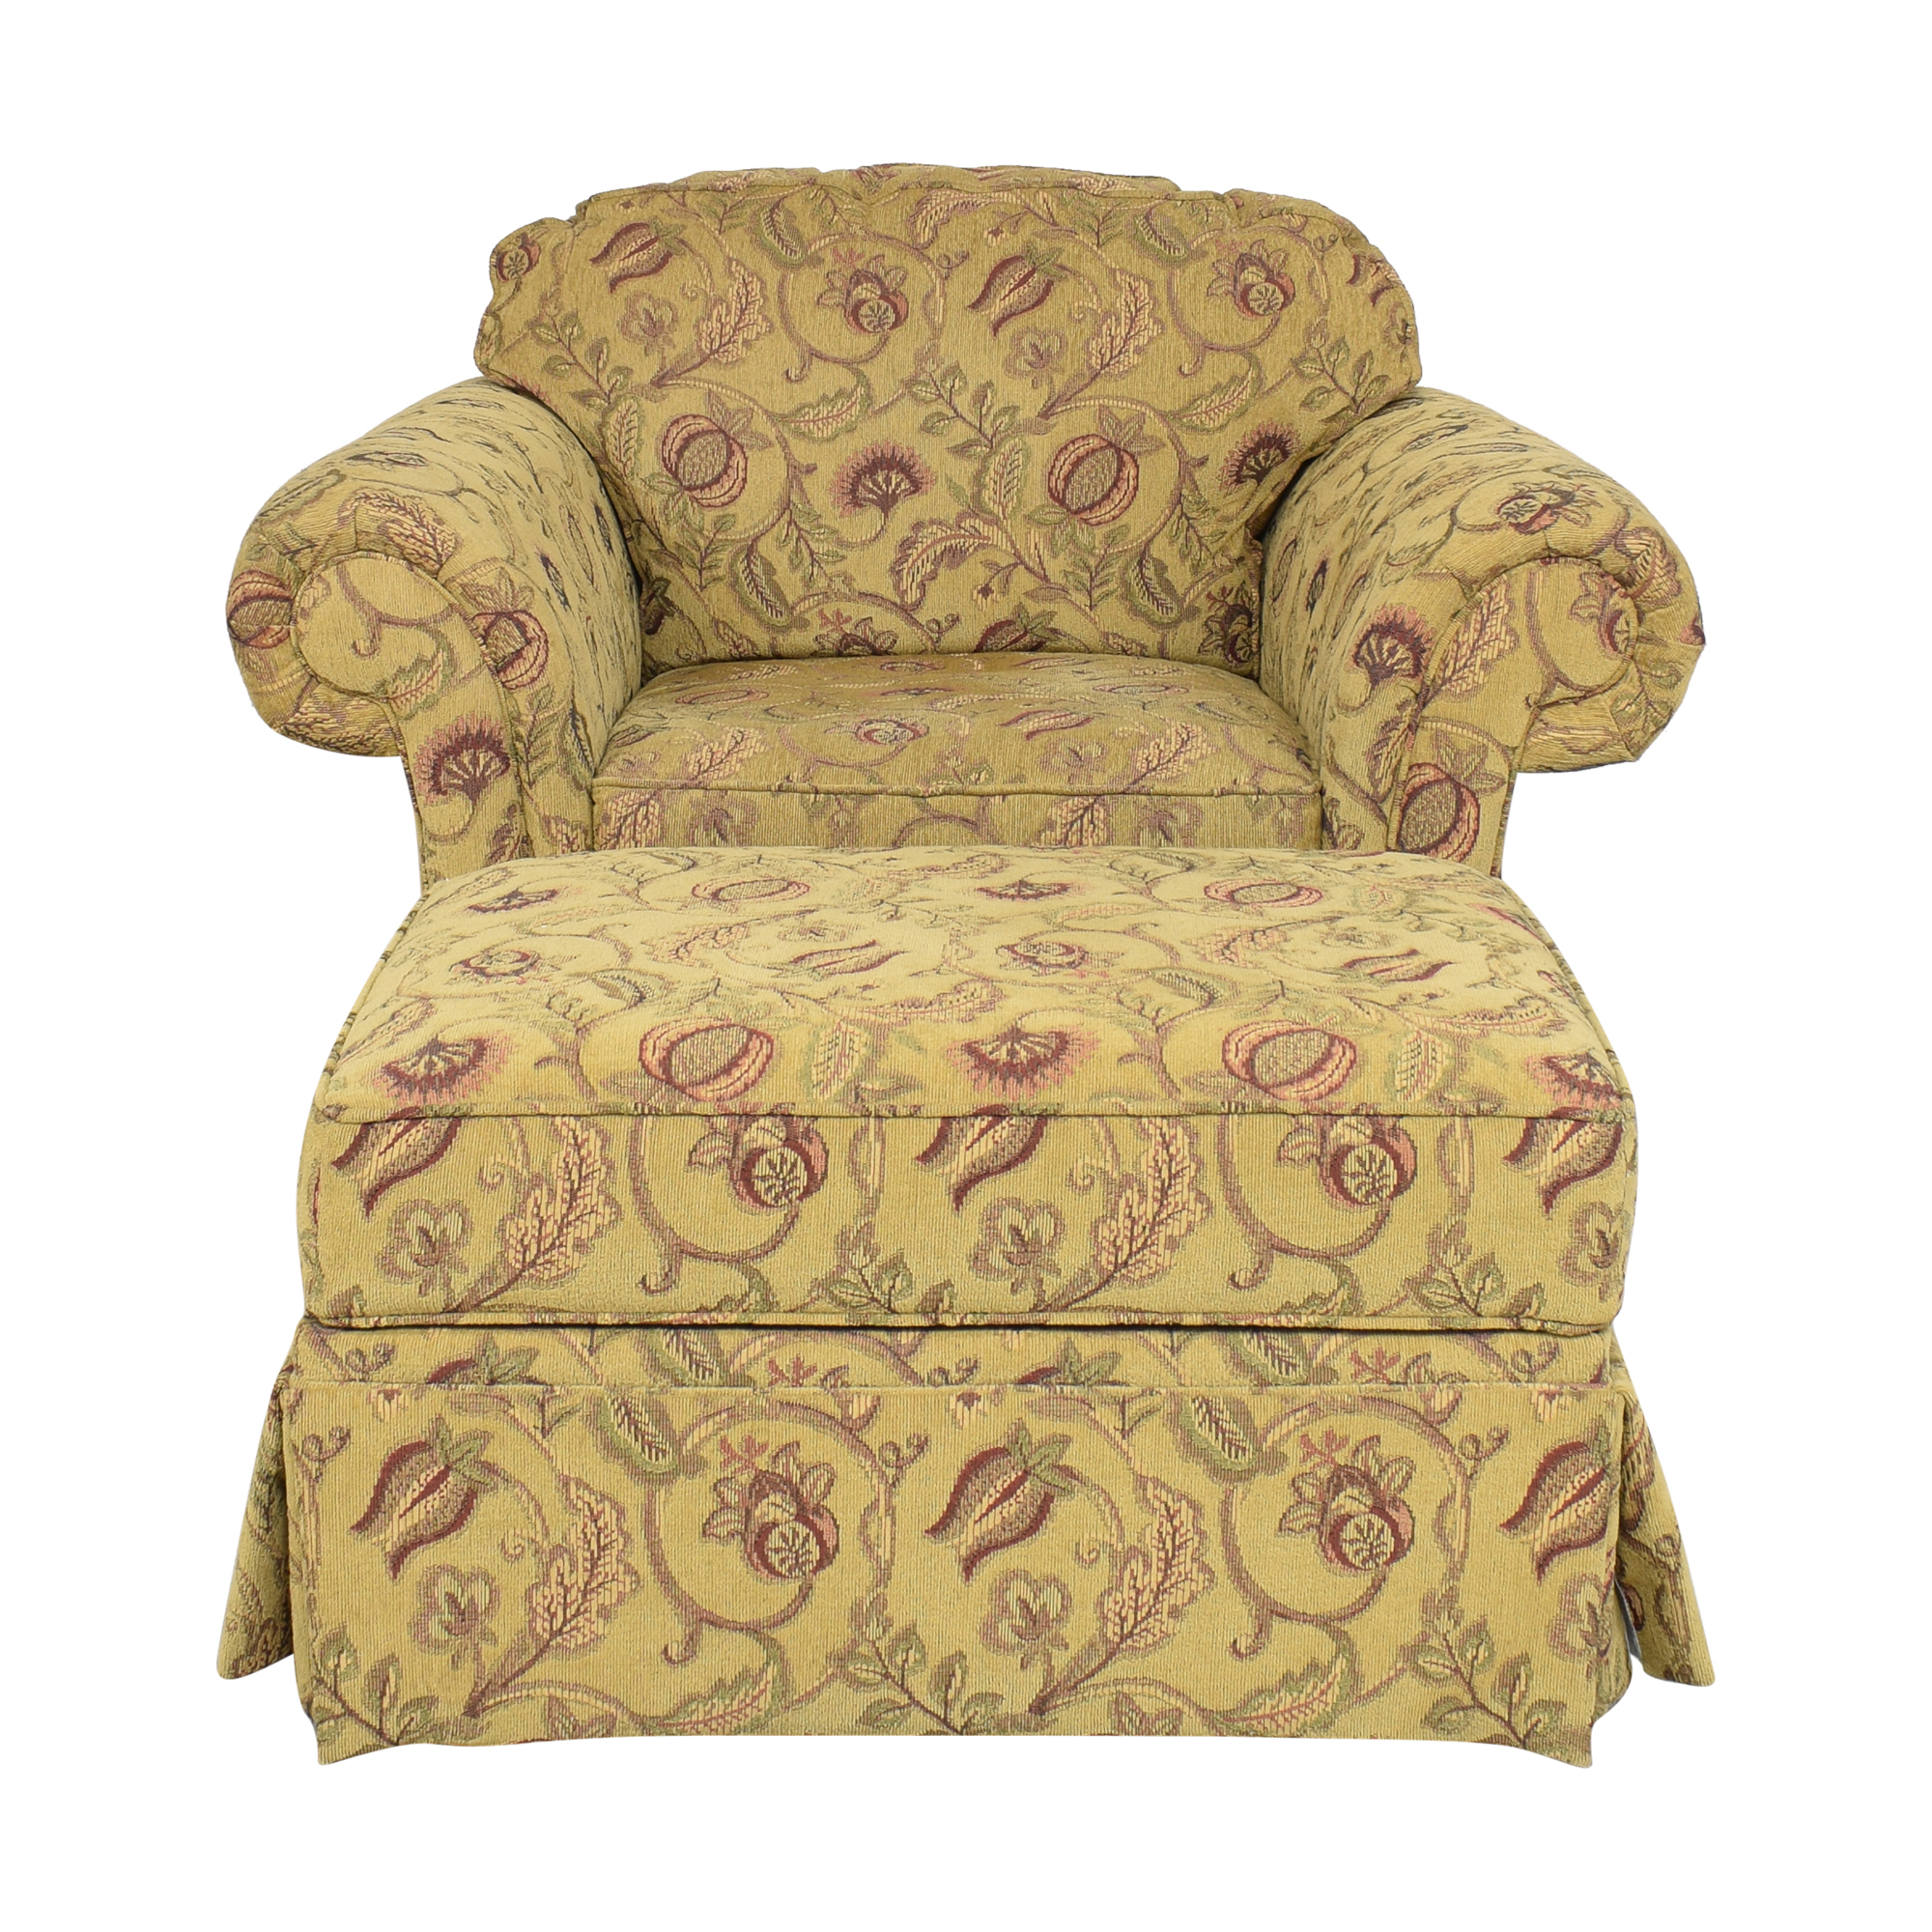 Broyhill Furniture Broyhill Furniture Roll Arm Chair with Ottoman Accent Chairs